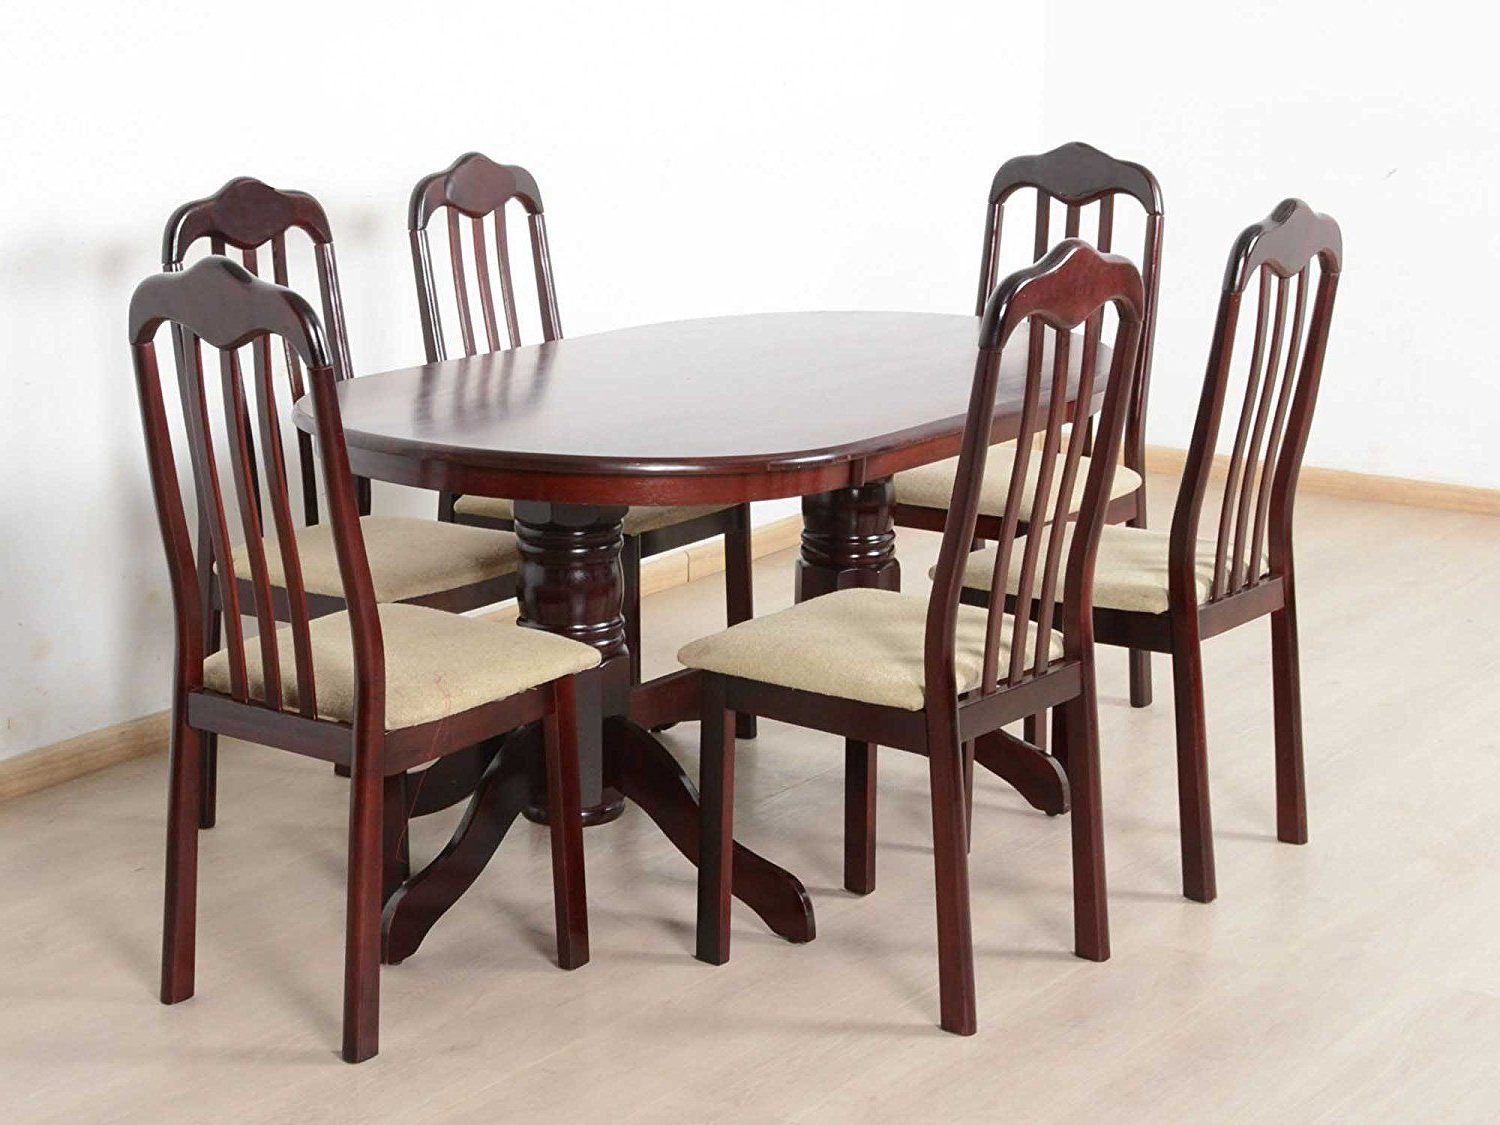 T2A Livez Six Seater Dining Table Set – Oval Shaped Regarding Widely Used Contemporary 4 Seating Oblong Dining Tables (Gallery 4 of 30)